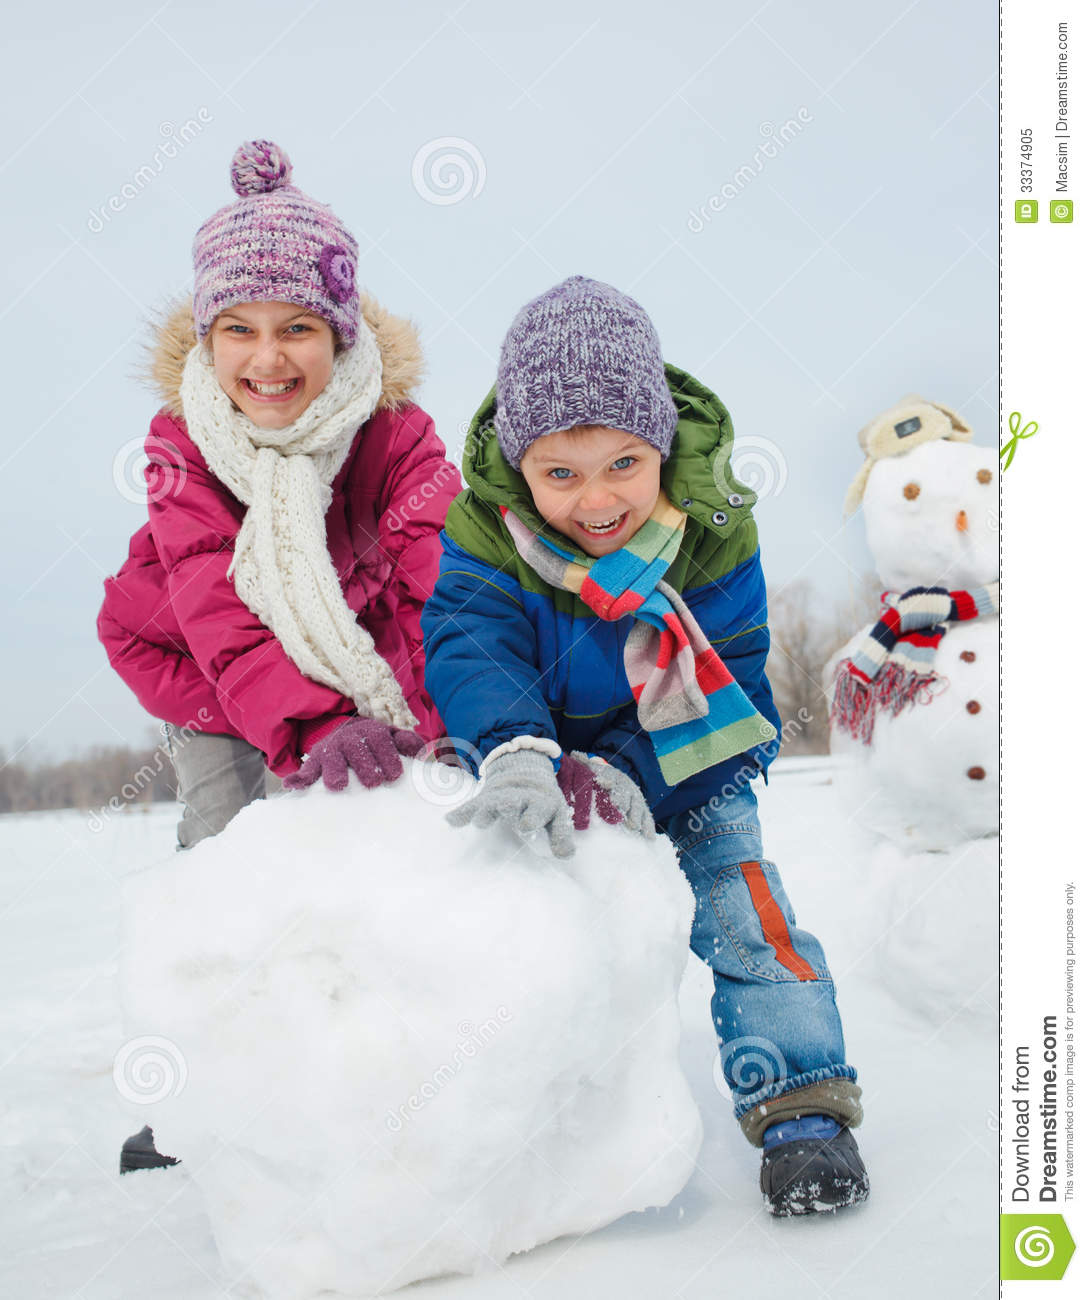 how to make snowman for kids